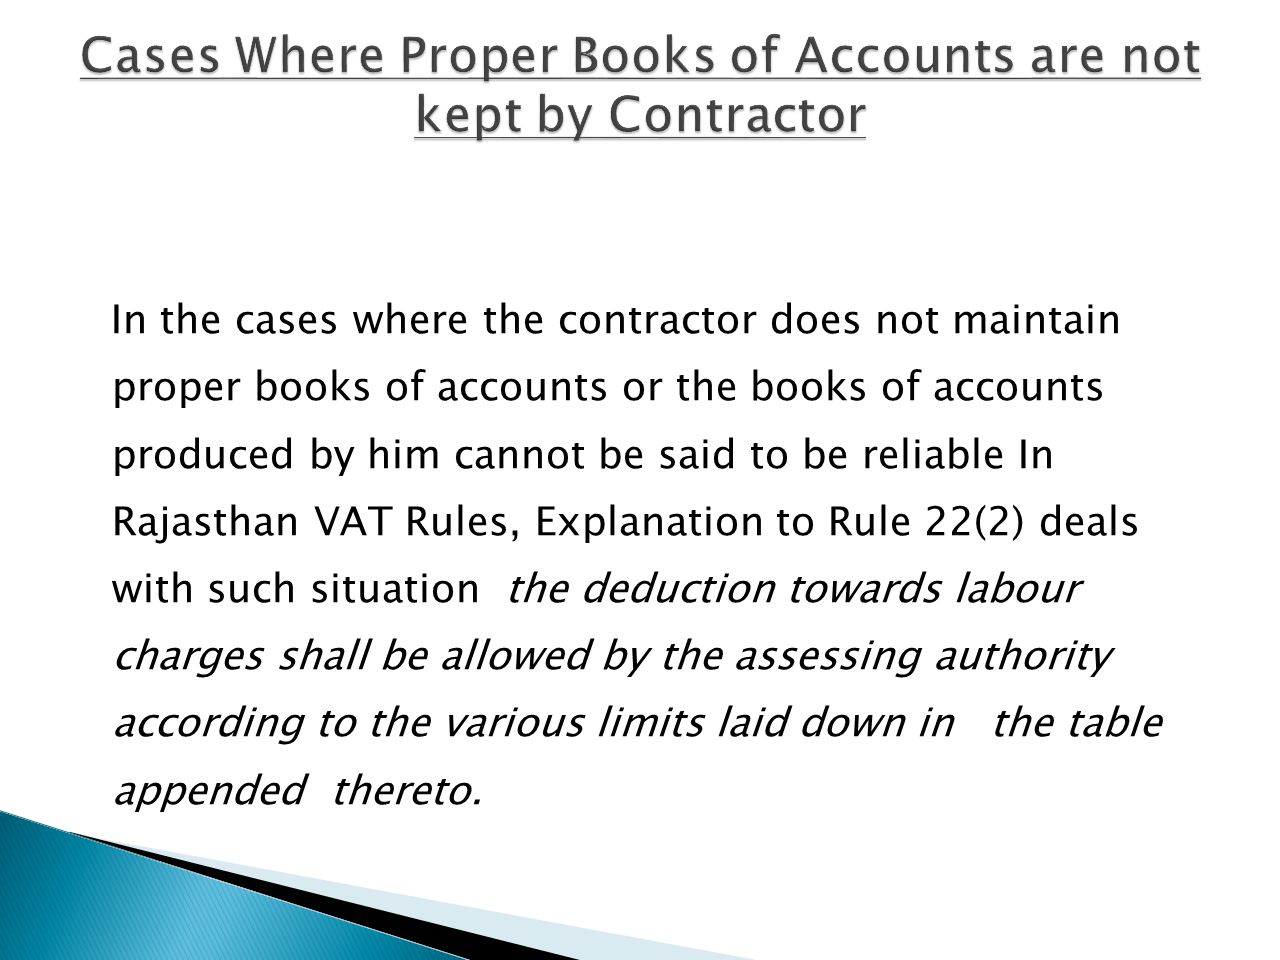 Cases Where Proper Books of Accounts are not kept by Contractor